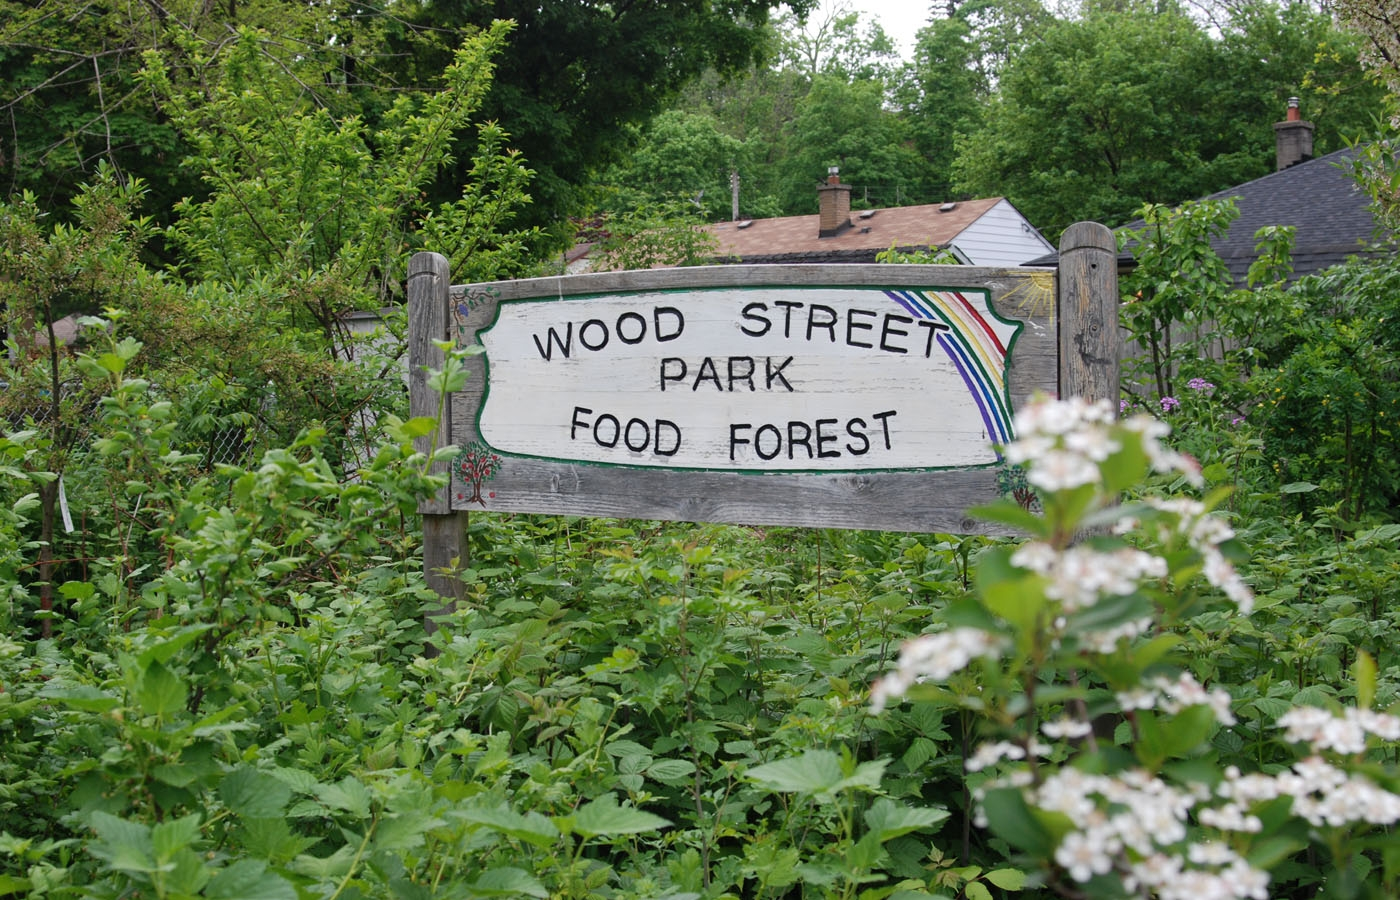 A sign for the Wood Street Park Food Forest Sign in London, Ontario